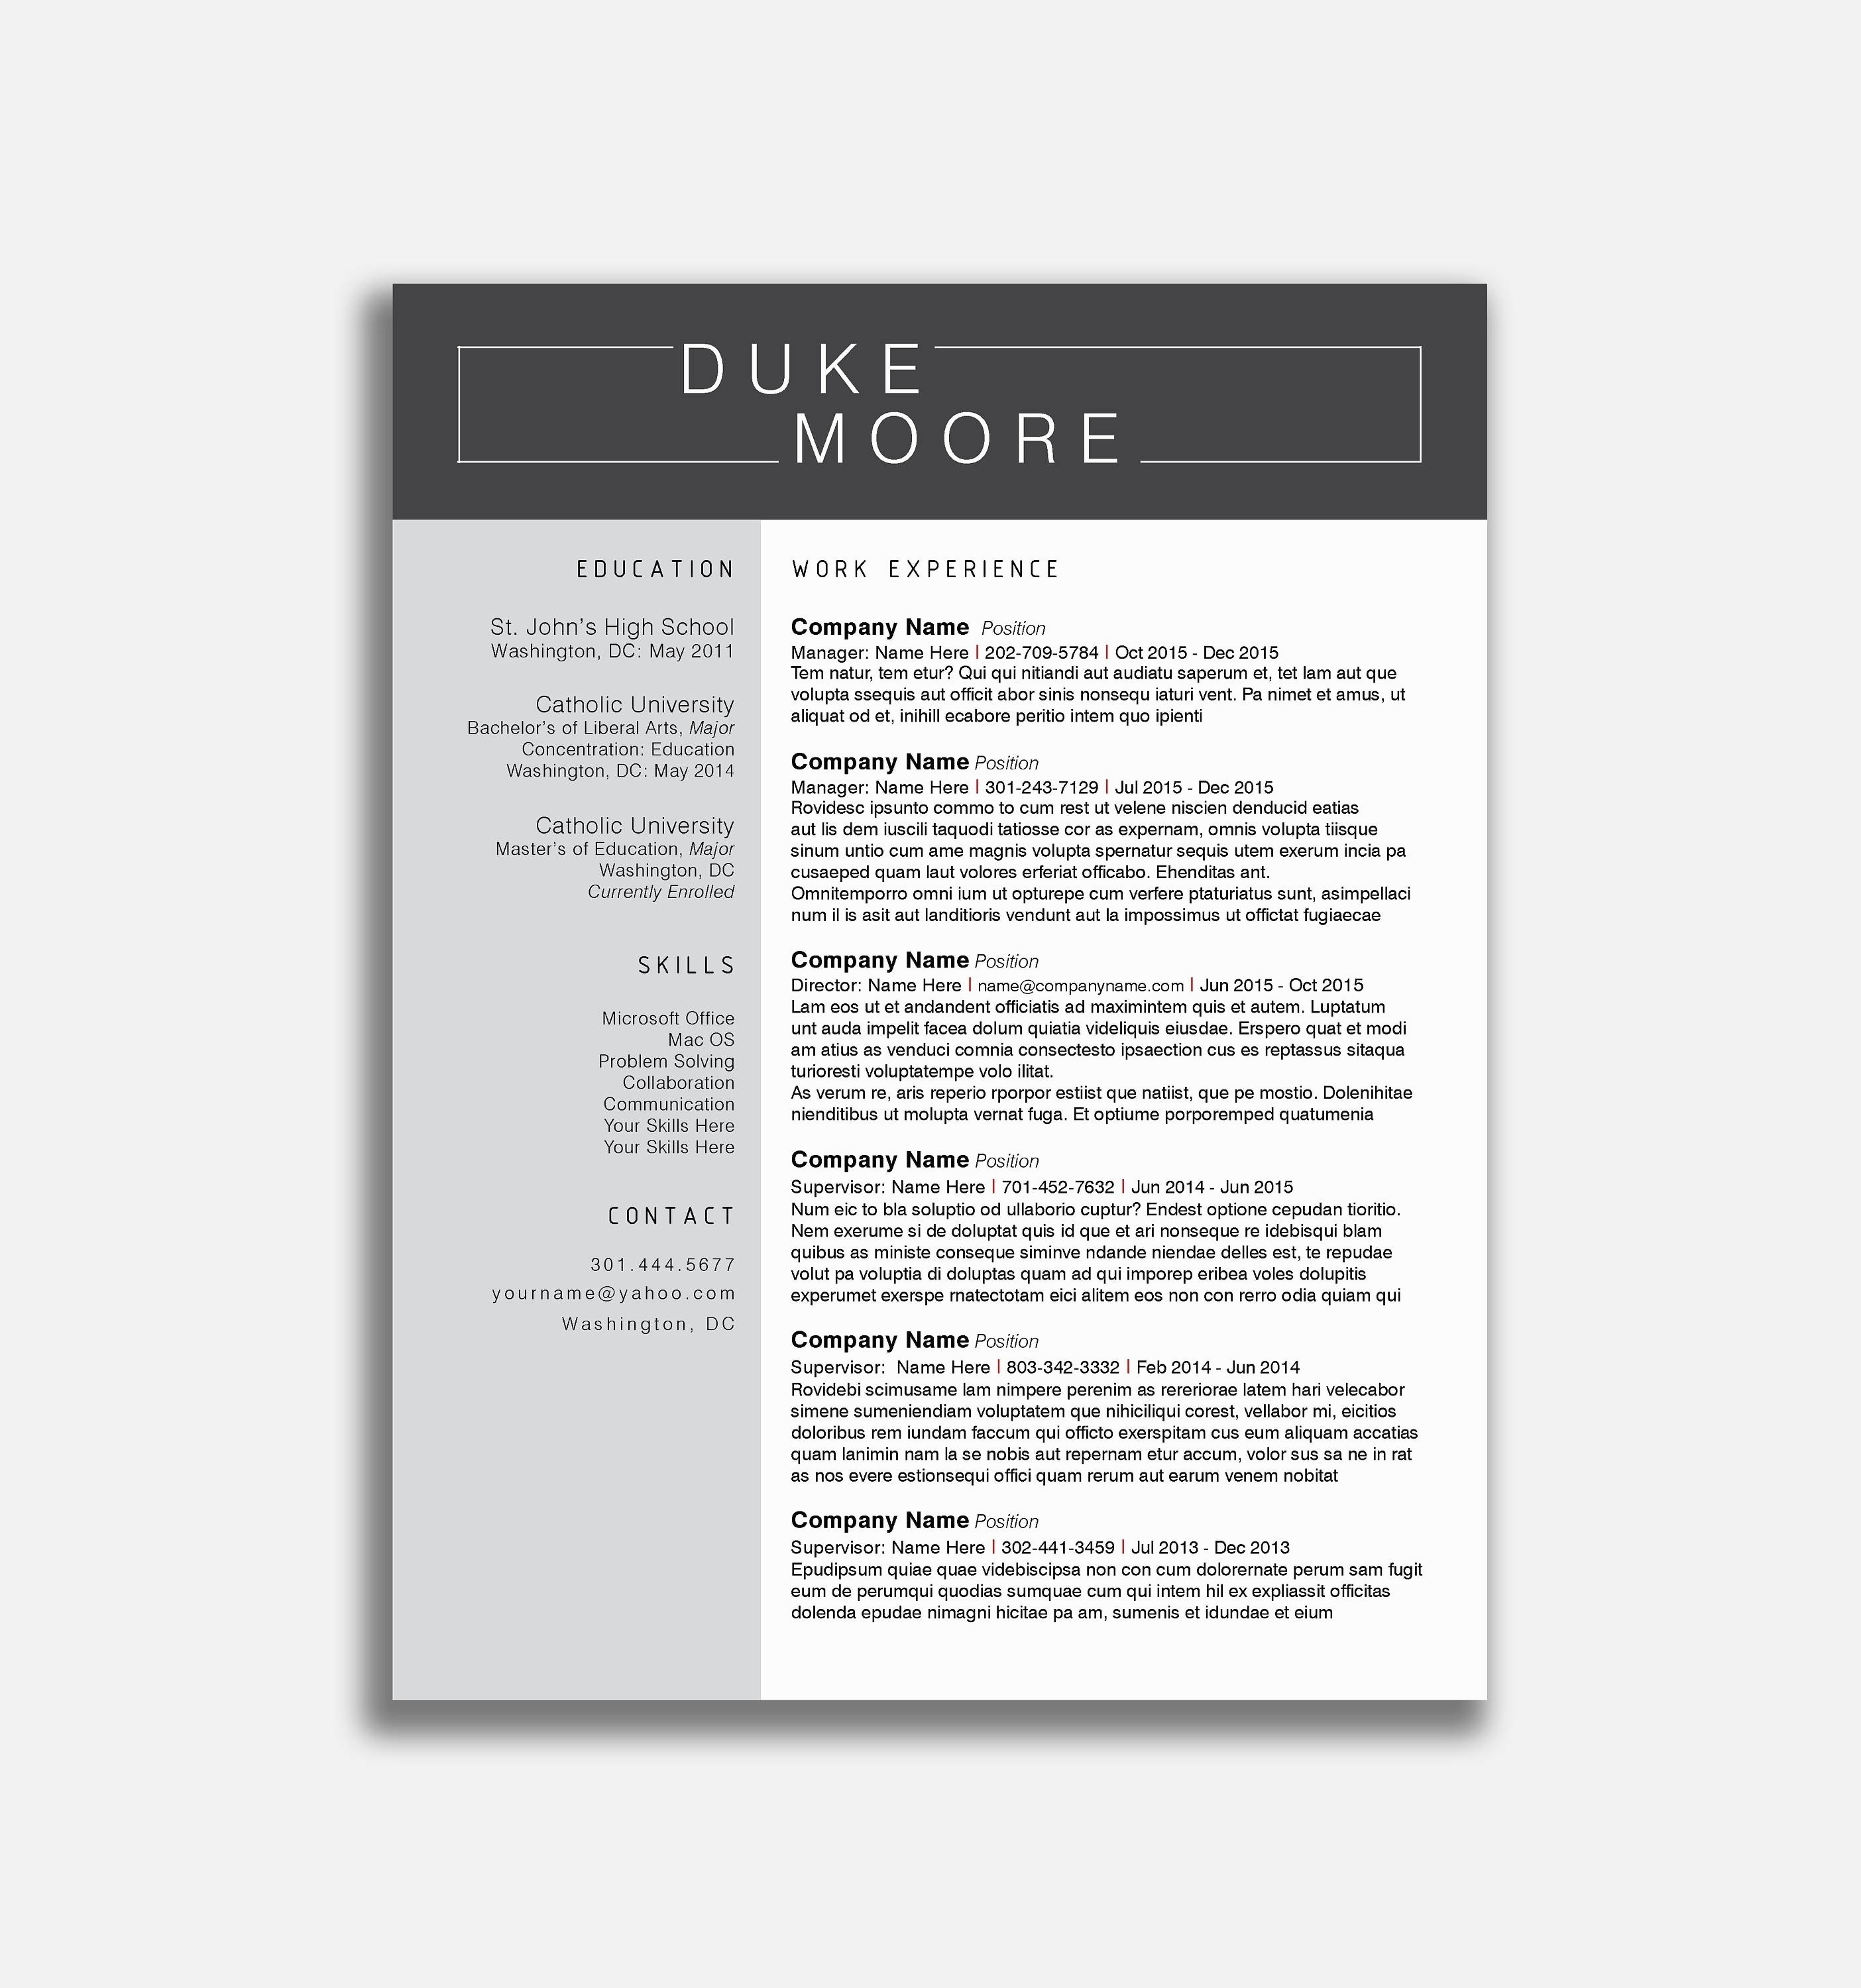 Resume for Insurance Agent - Collection Agent Resume New Sample Resume Insurance Agent Resume